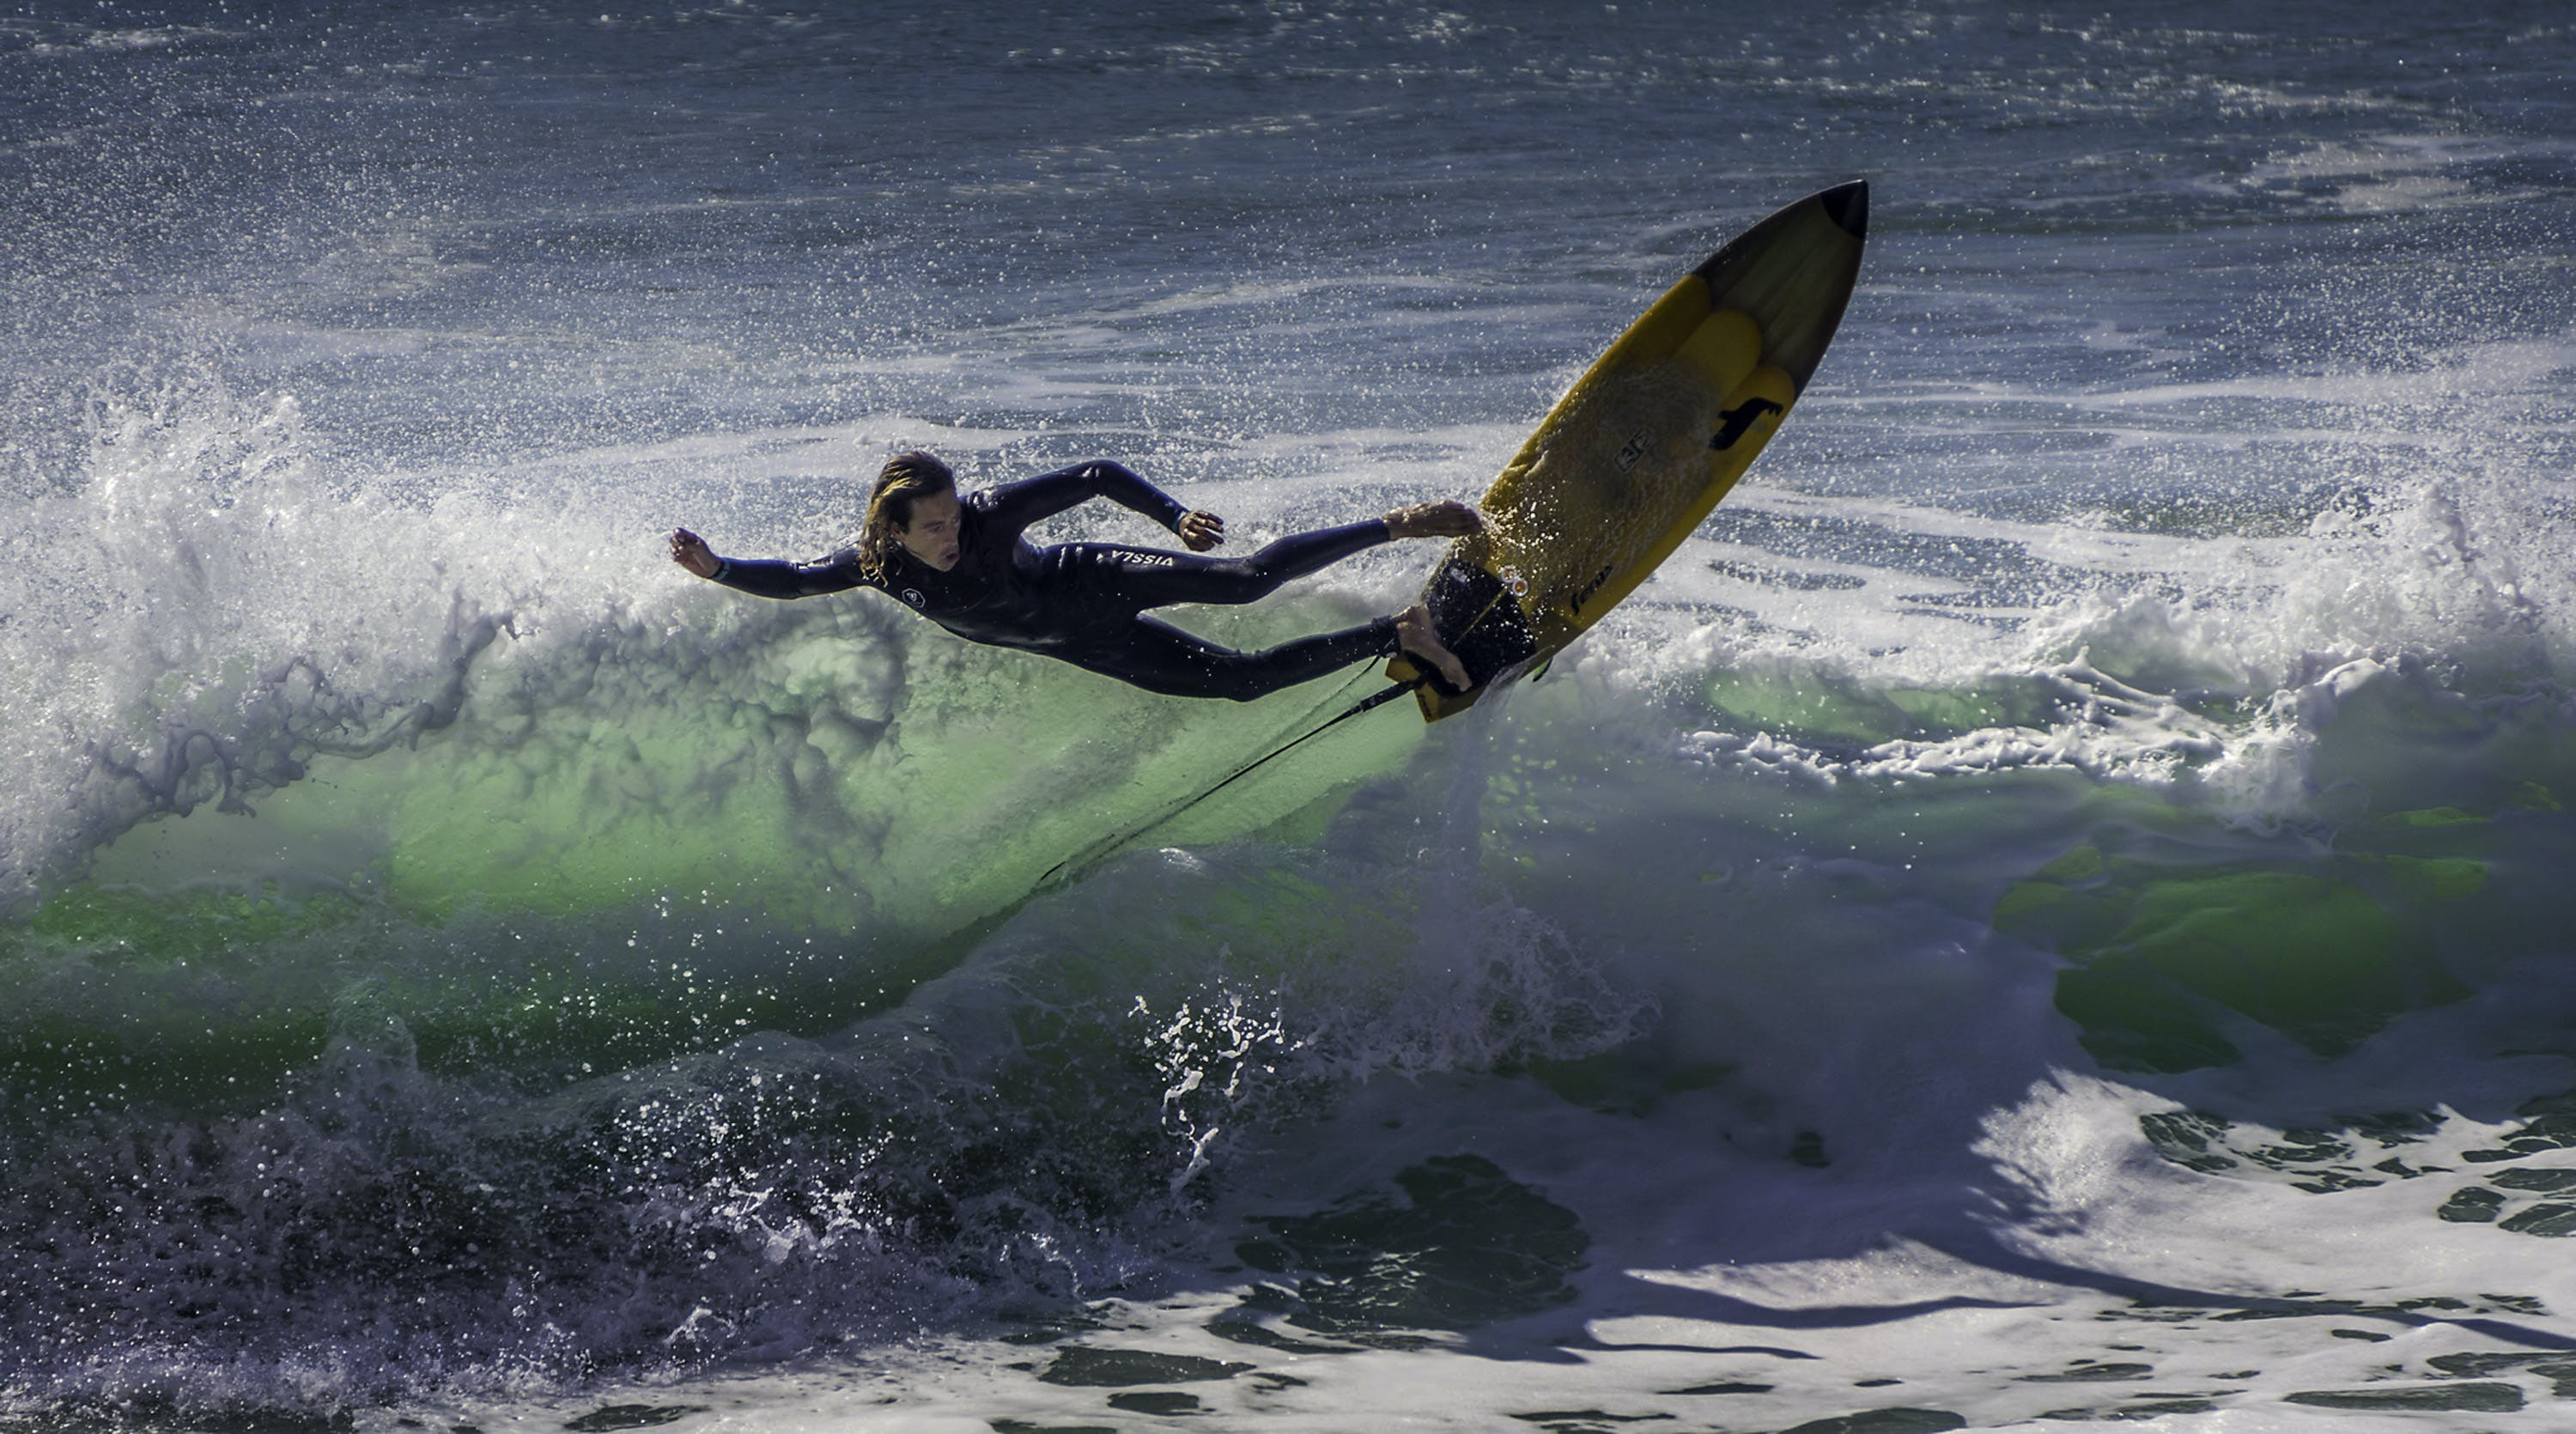 Photograph of a Person Surfing